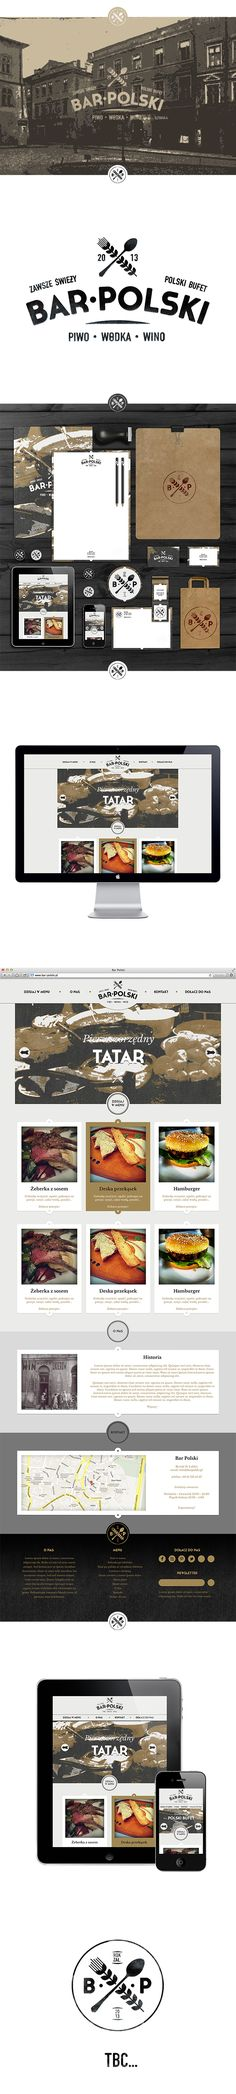 Bar Polski by Gustaw Dmowski, via Behance #identity #packaging #branding #marketing PD